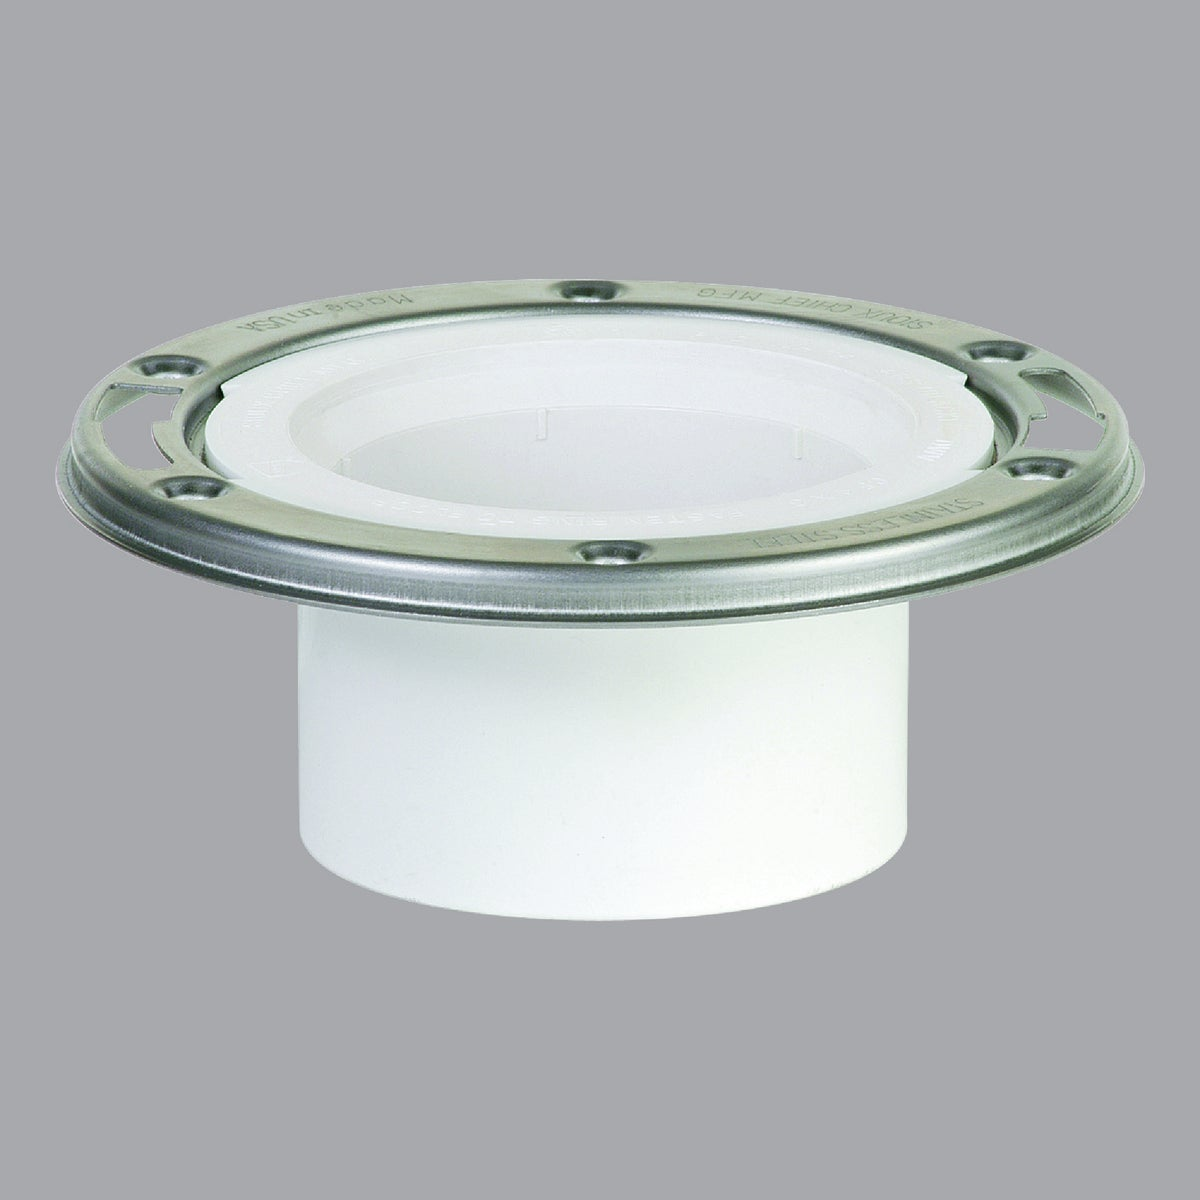 4X3 SS PVC CLOSET FLANGE - 887-PM by Sioux Chief Mfg